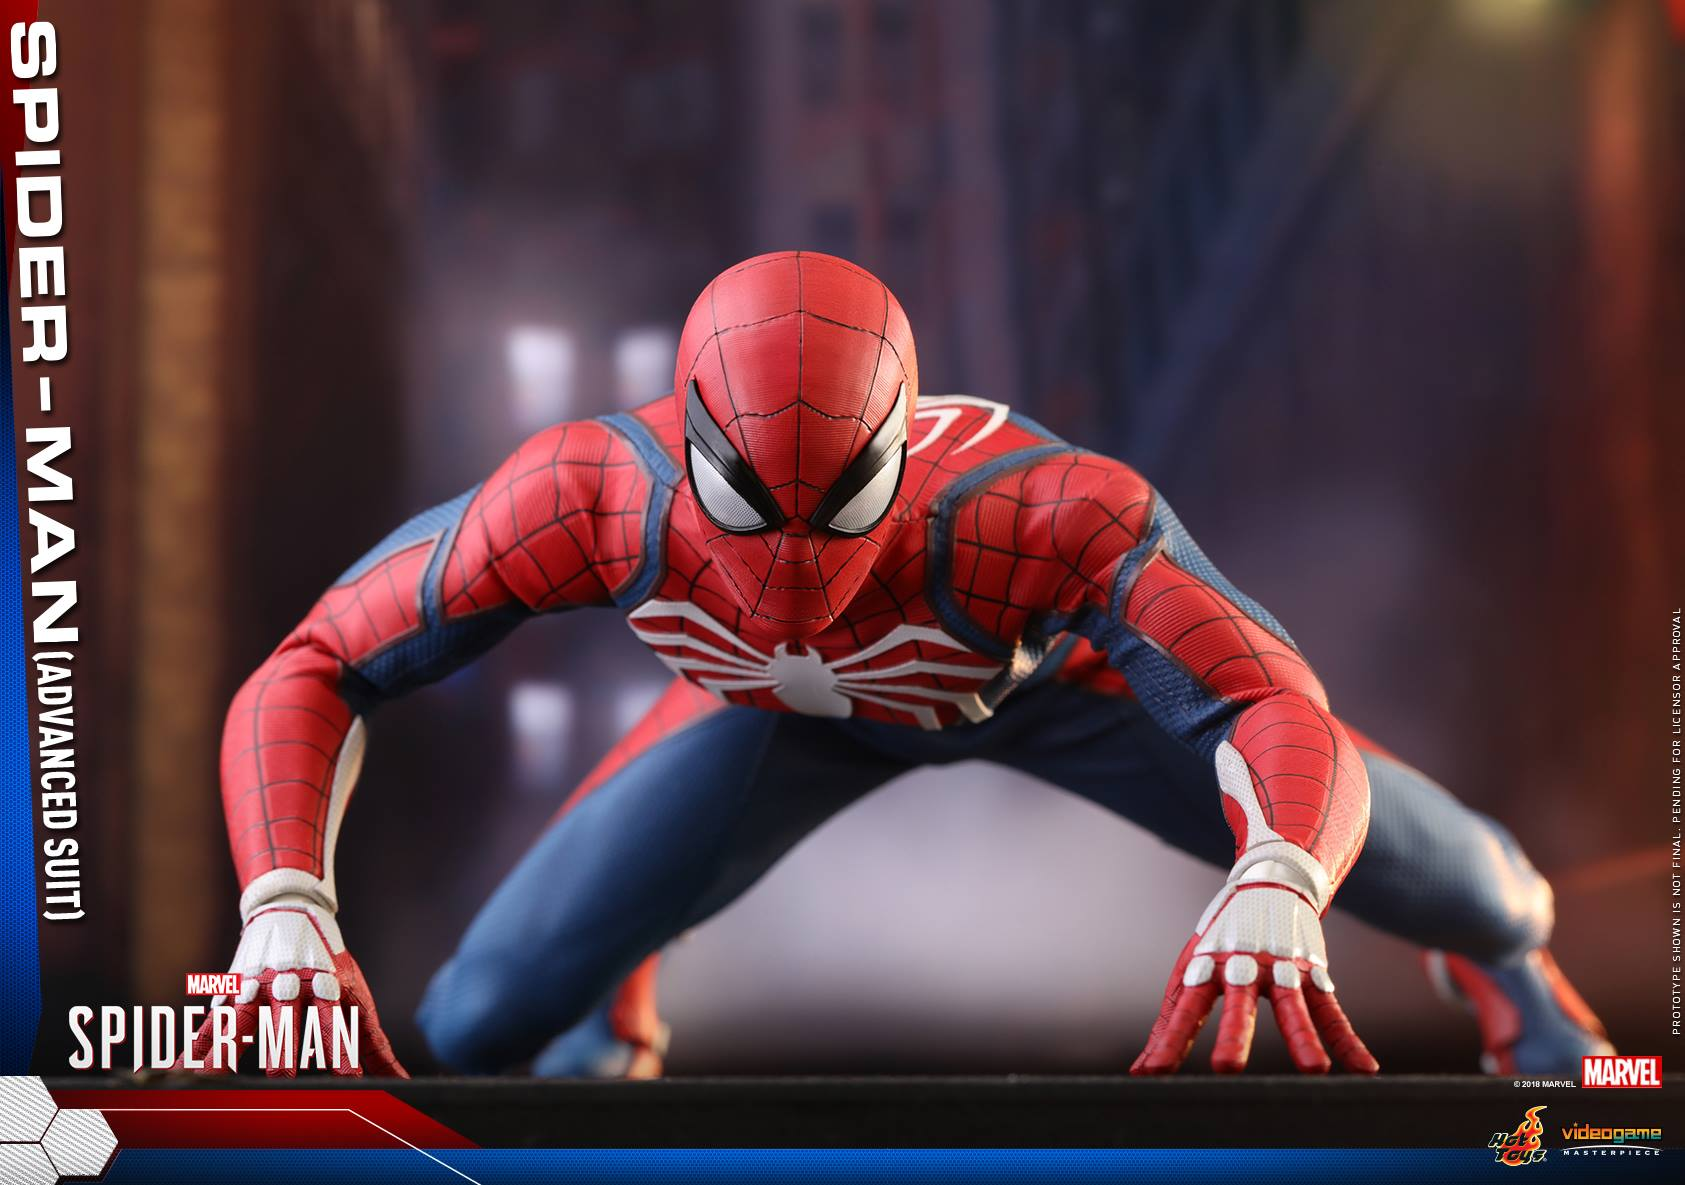 Pre-Order Hot Toys Marvel Spider-Man Advanced Suit Figure